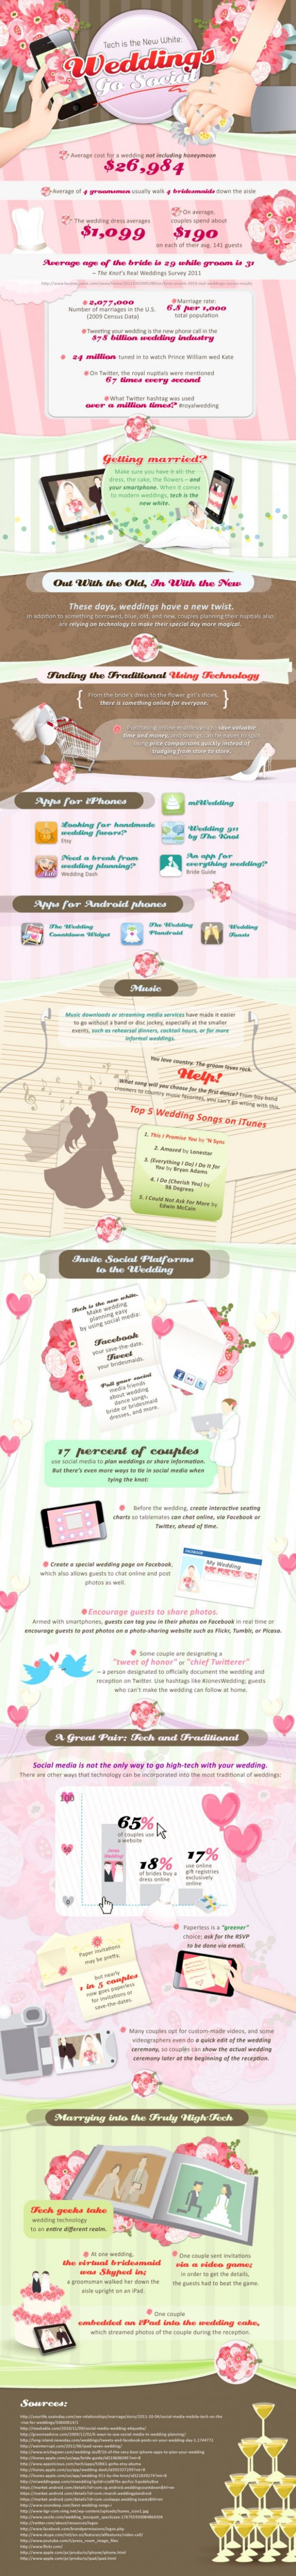 The Best Wedding Infographic Ever!